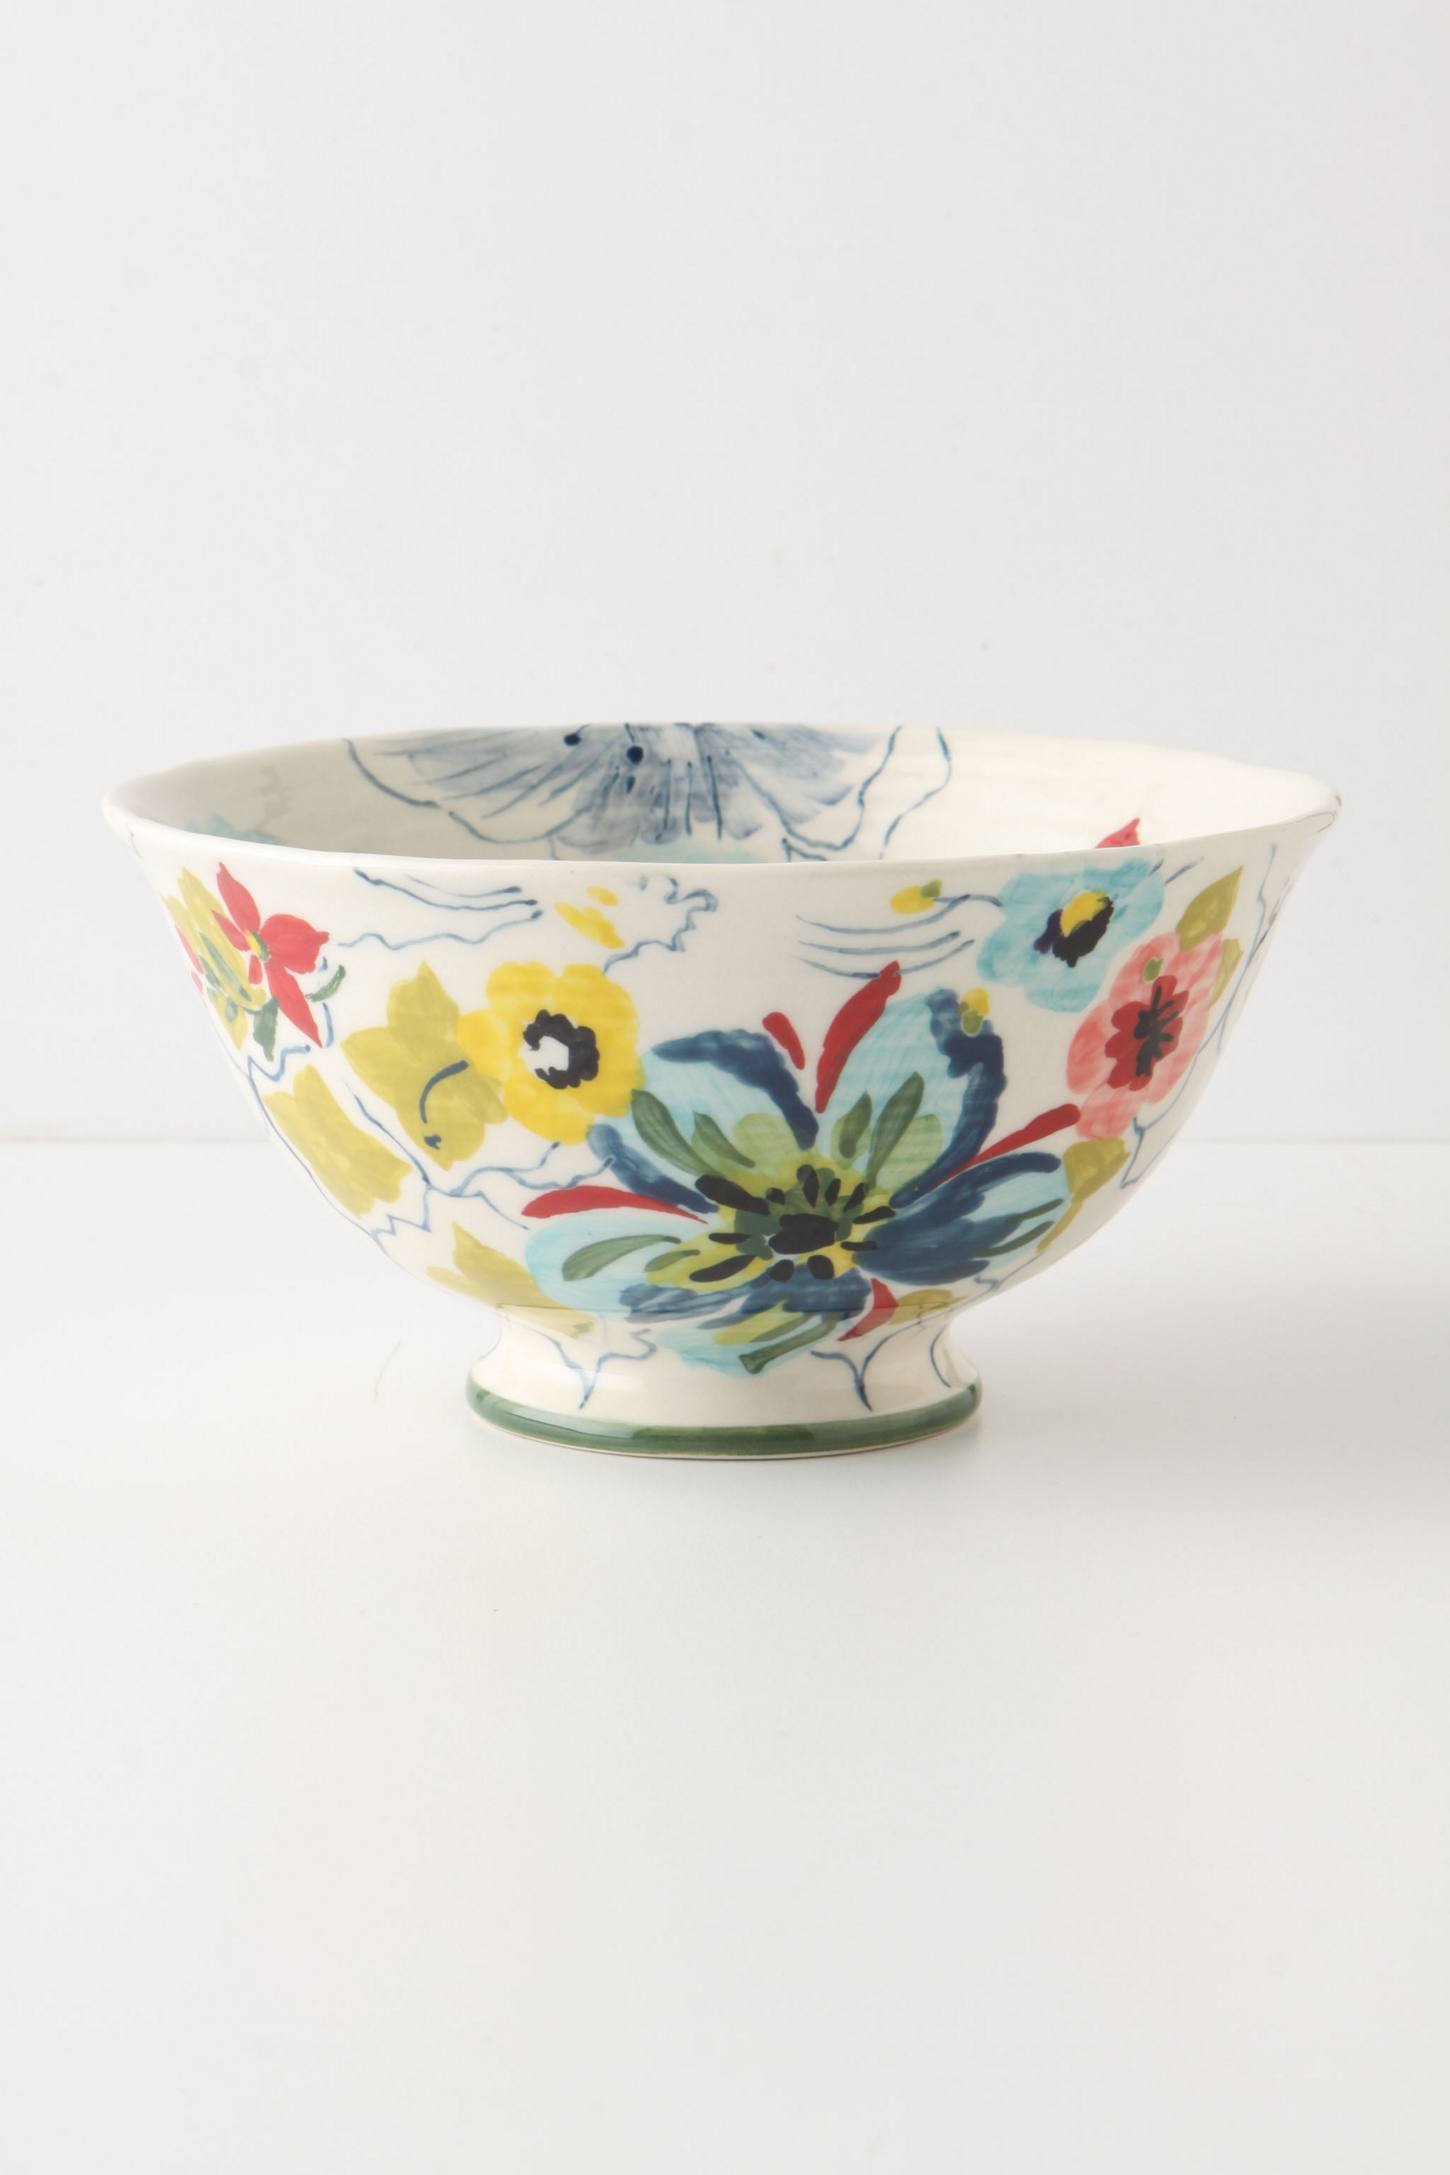 Sissinghurst Castle Cereal Bowl